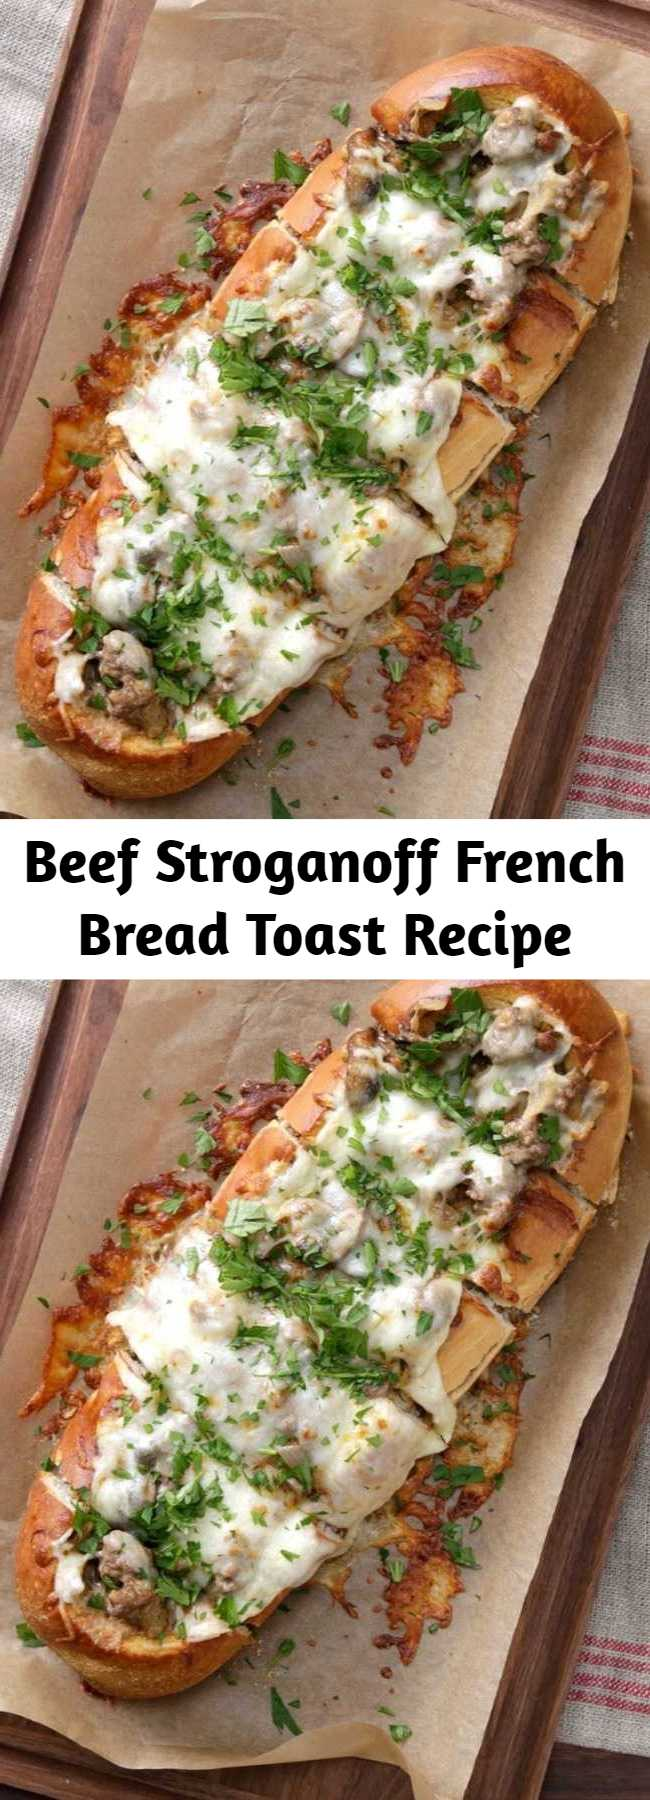 Beef Stroganoff French Bread Toast Recipe - Why serve beef stroganoff with a side of French bread when it's so much tastier served inside the French bread?